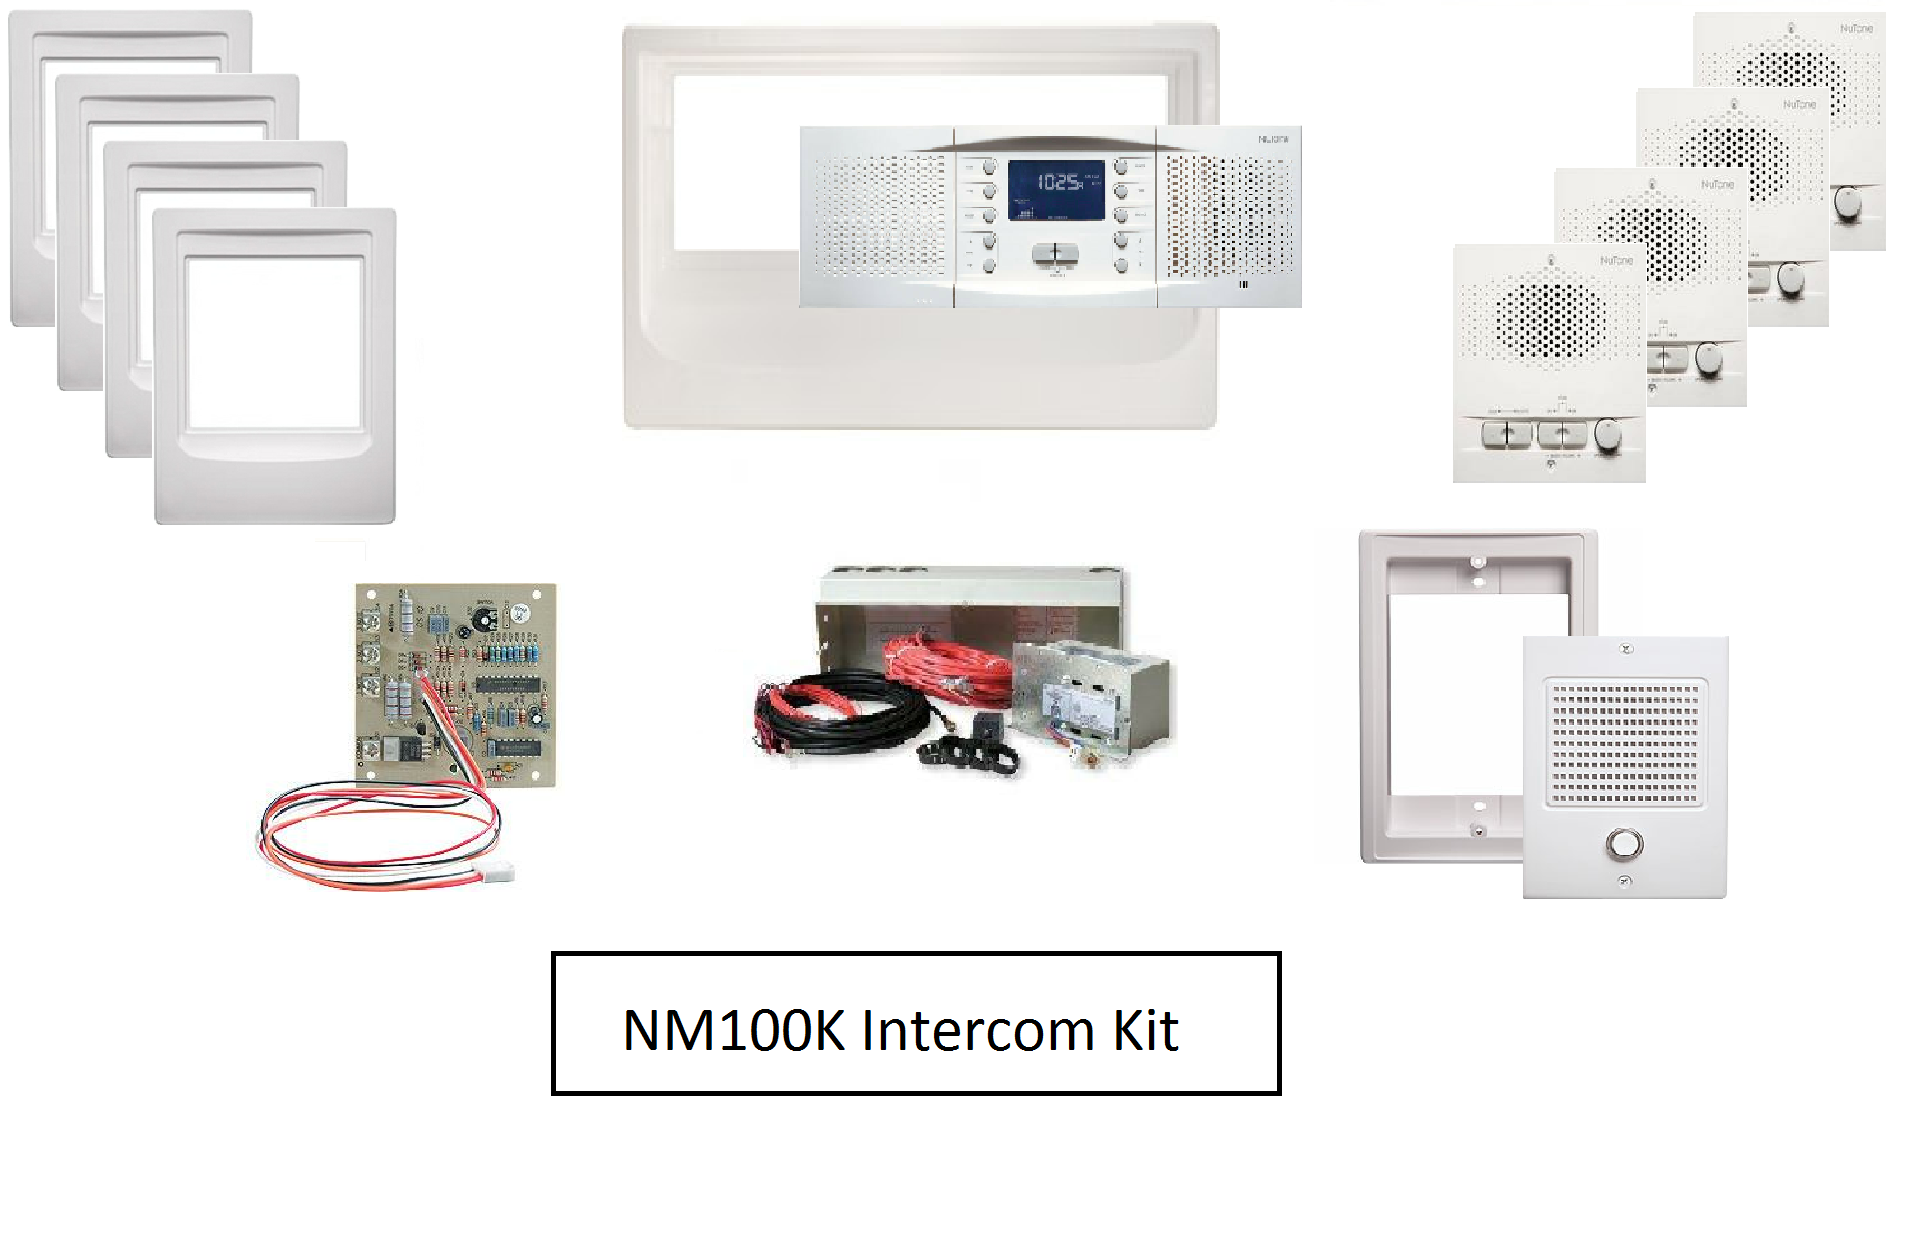 Intercom System Kit Model - Nutone NM100K intercom master station, intercom system with music, intercom speaker, home intercom system, office intercom system, intercom system